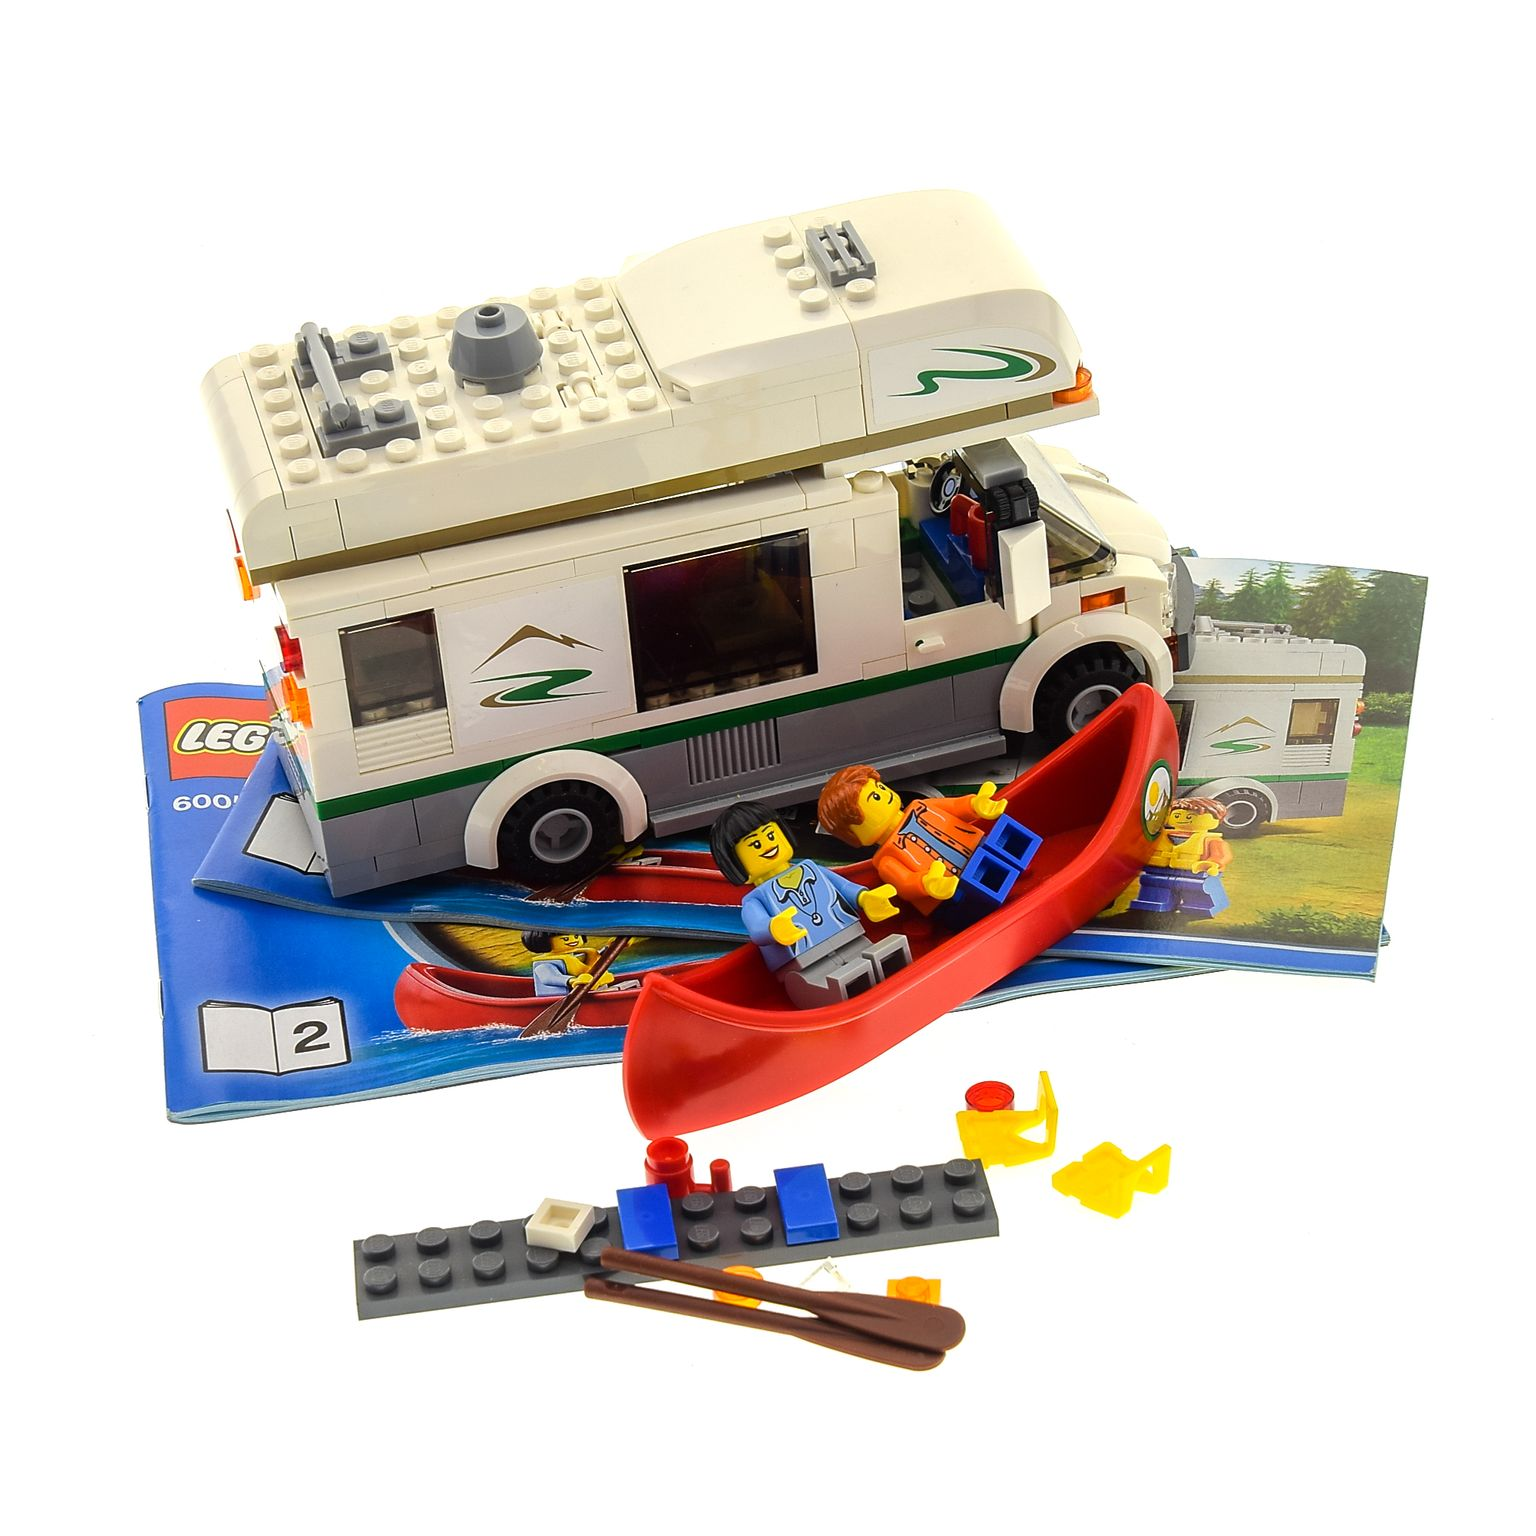 LEGO/DUPLO Spezialist | 1 x Lego brick Parts for Set Model Town City  Recreation 60057 Camper Van with Instructions 1 + 2 ( model incomplete )